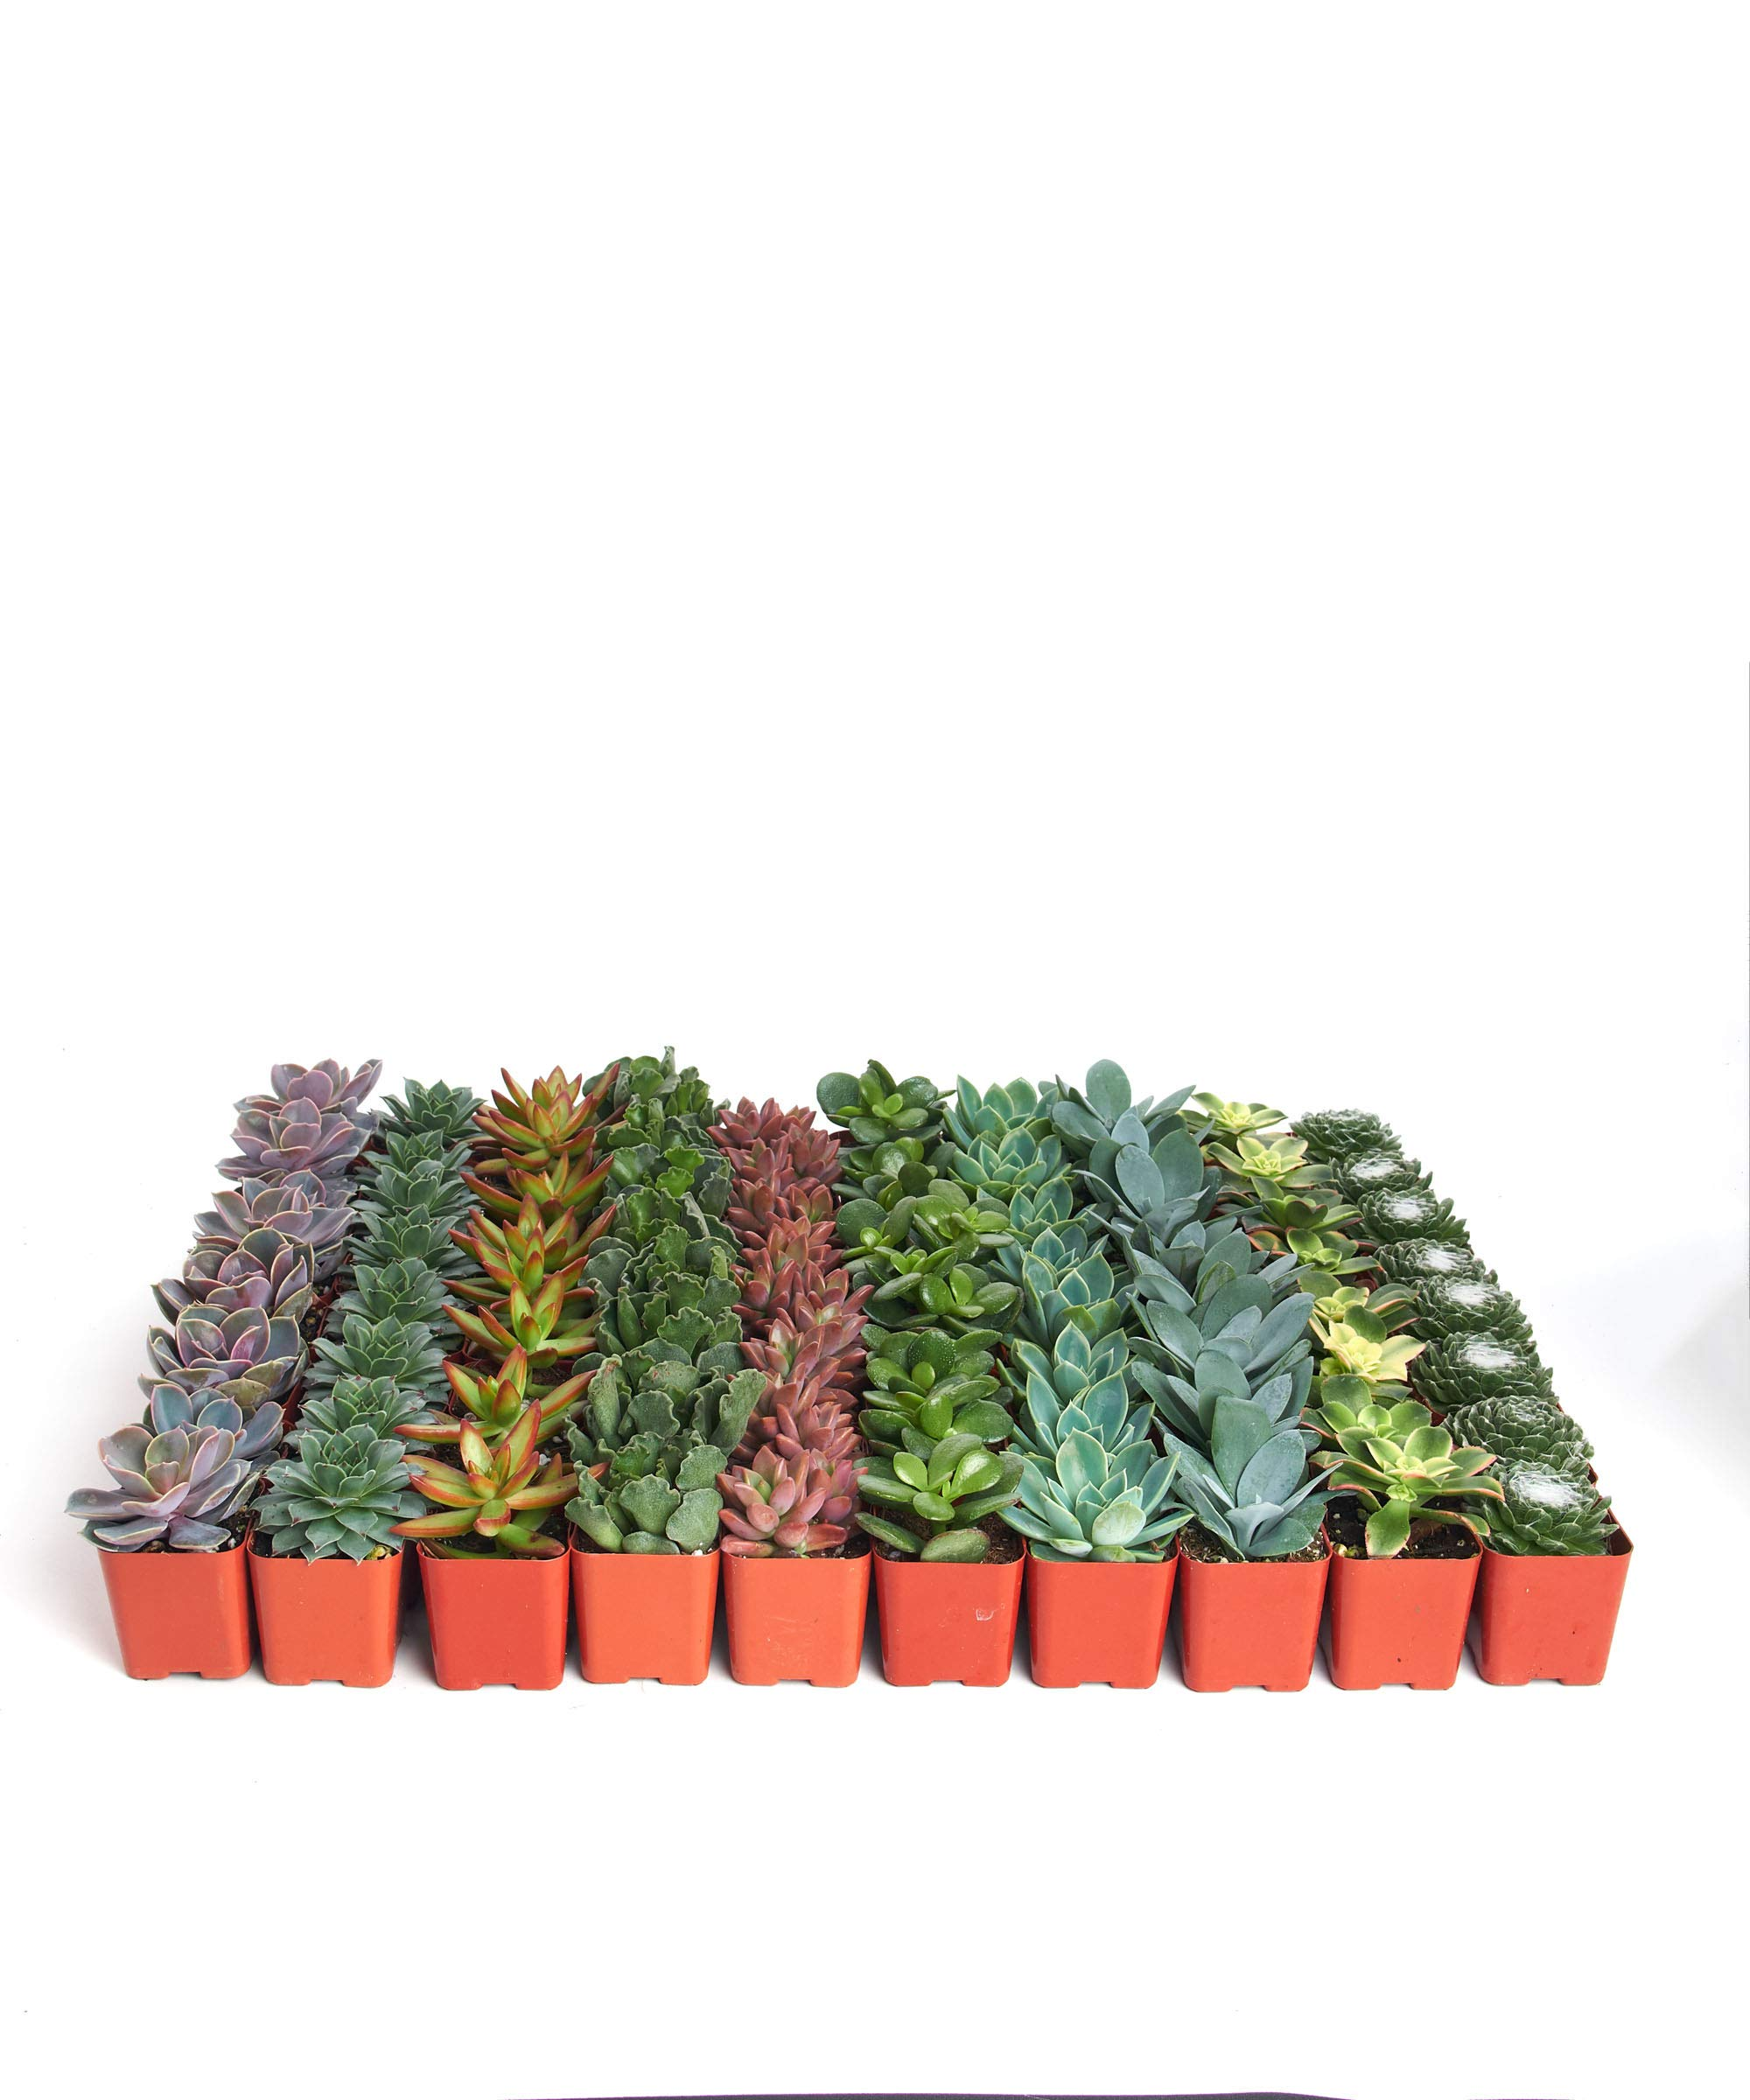 Shop Succulents| Assorted Collection of Live SucculentPlants, Hand Selected Variety Pack of Mini Succulents | Collection of 128 in 2'' pots by Shop Succulents (Image #2)